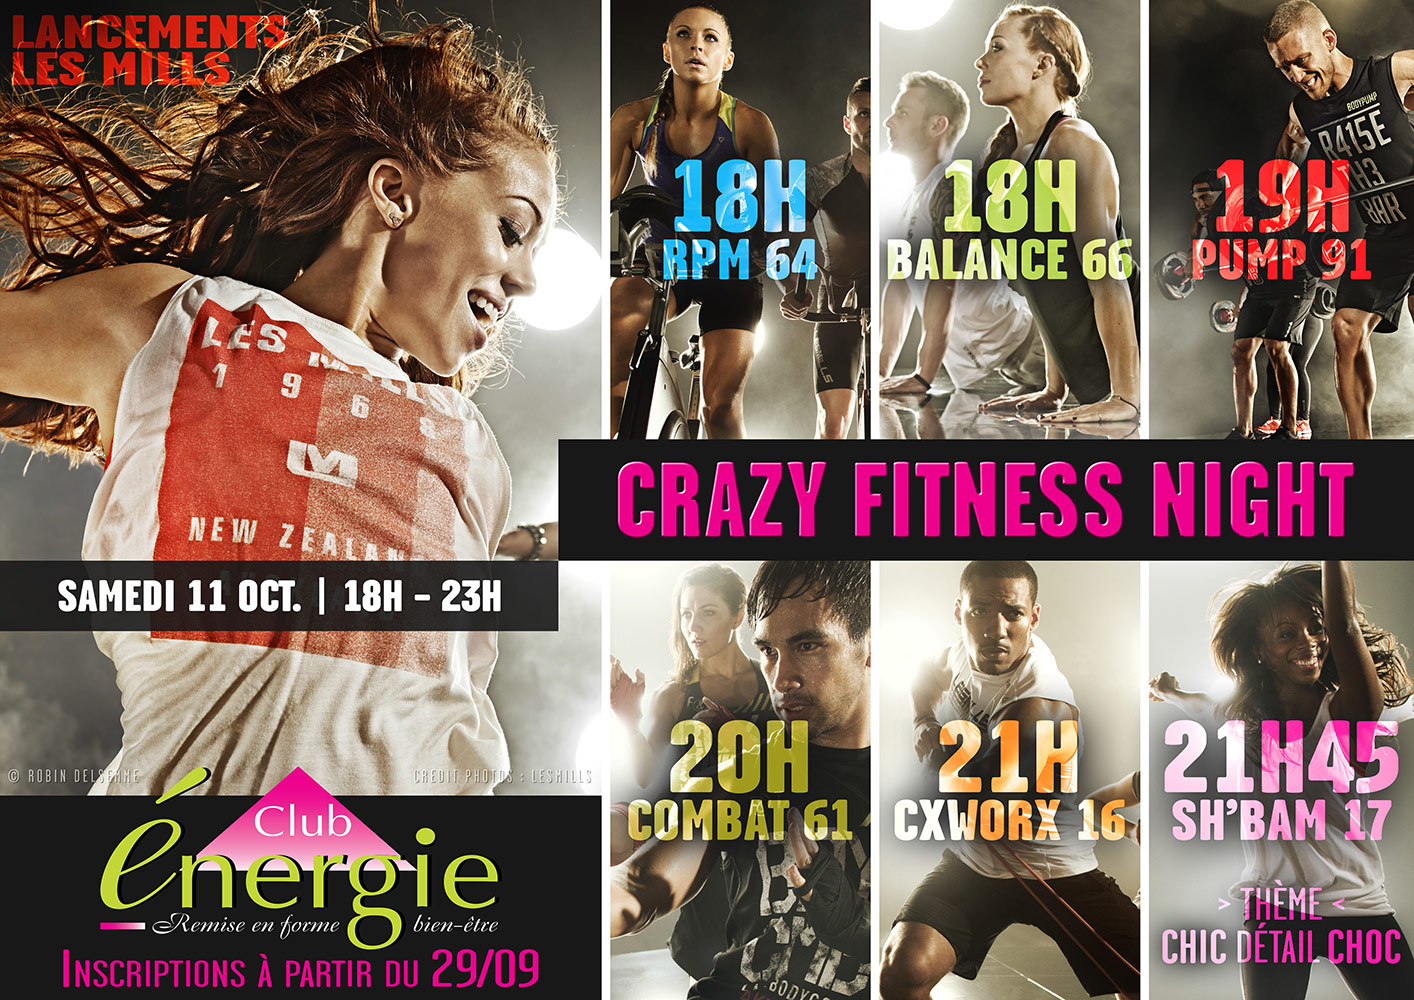 Affiche Crazy Fitness Night Lancements Les Mills Octobre 2014 club energie fitness orleans